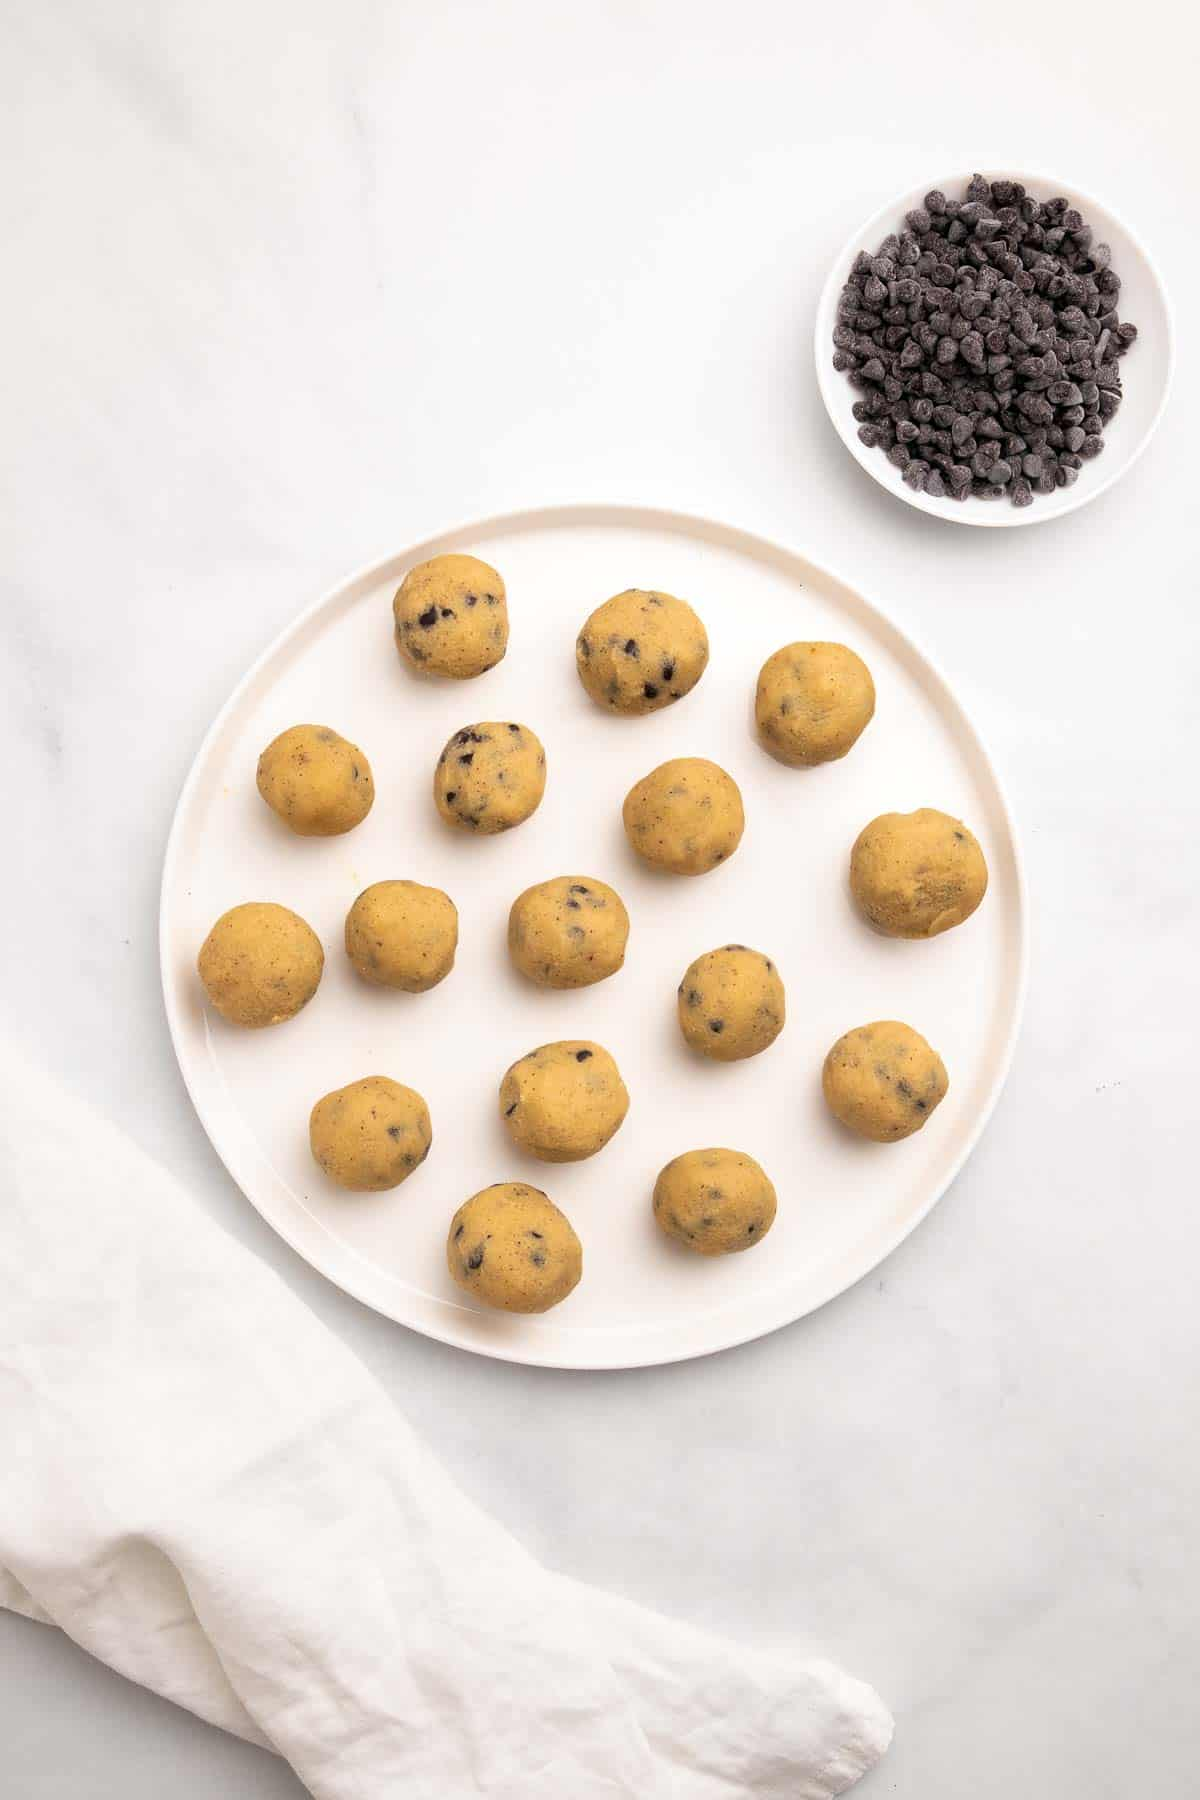 Cookie dough balls on a white circular tray next to a ramekin of chocolate chips, as seen from above